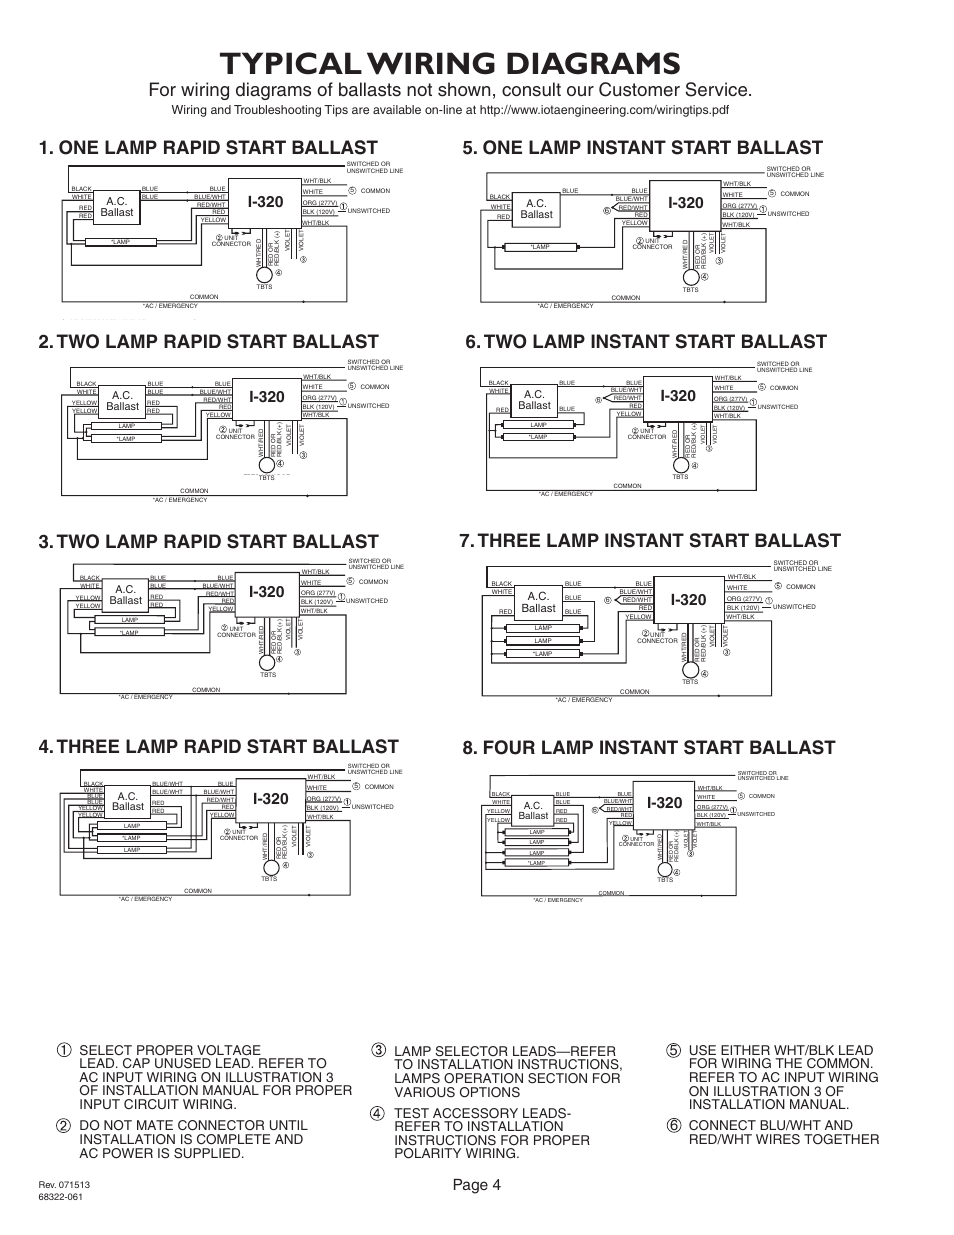 iota i 320 page4 eb60 emergency ballasts wiring diagram diagram wiring diagrams  at pacquiaovsvargaslive.co